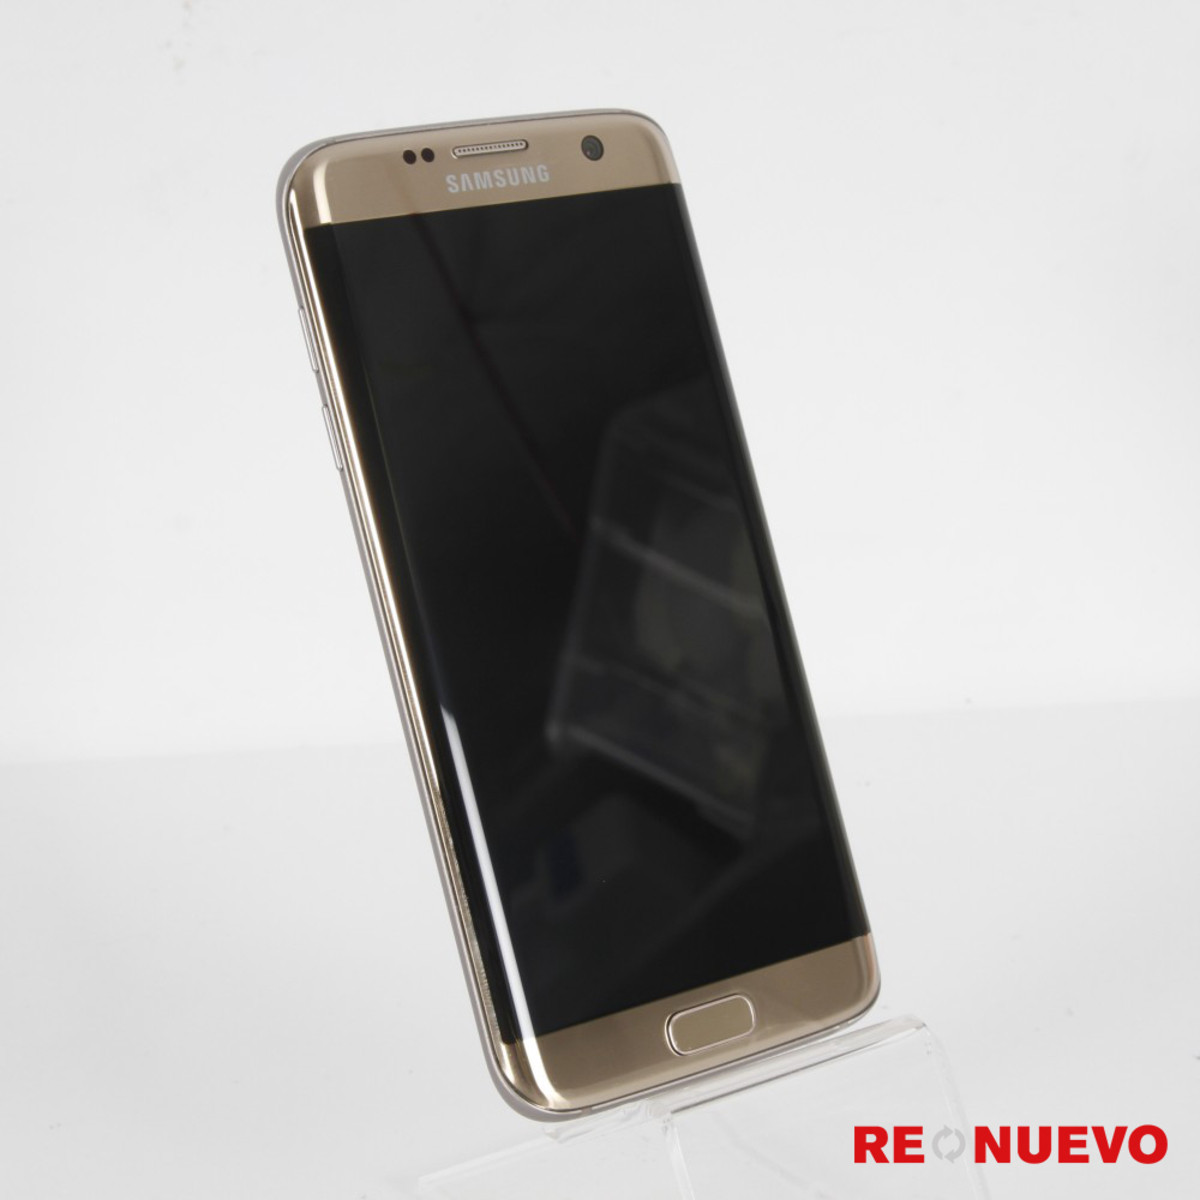 Comprar Galaxy S7 Edge Adorable Prar Samsung Galaxy S7 Edge De 32gb Gold De Segunda Of Comprar Galaxy S7 Edge Perfecto Samsung Galaxy S7 Edge Celulares Costa Rica